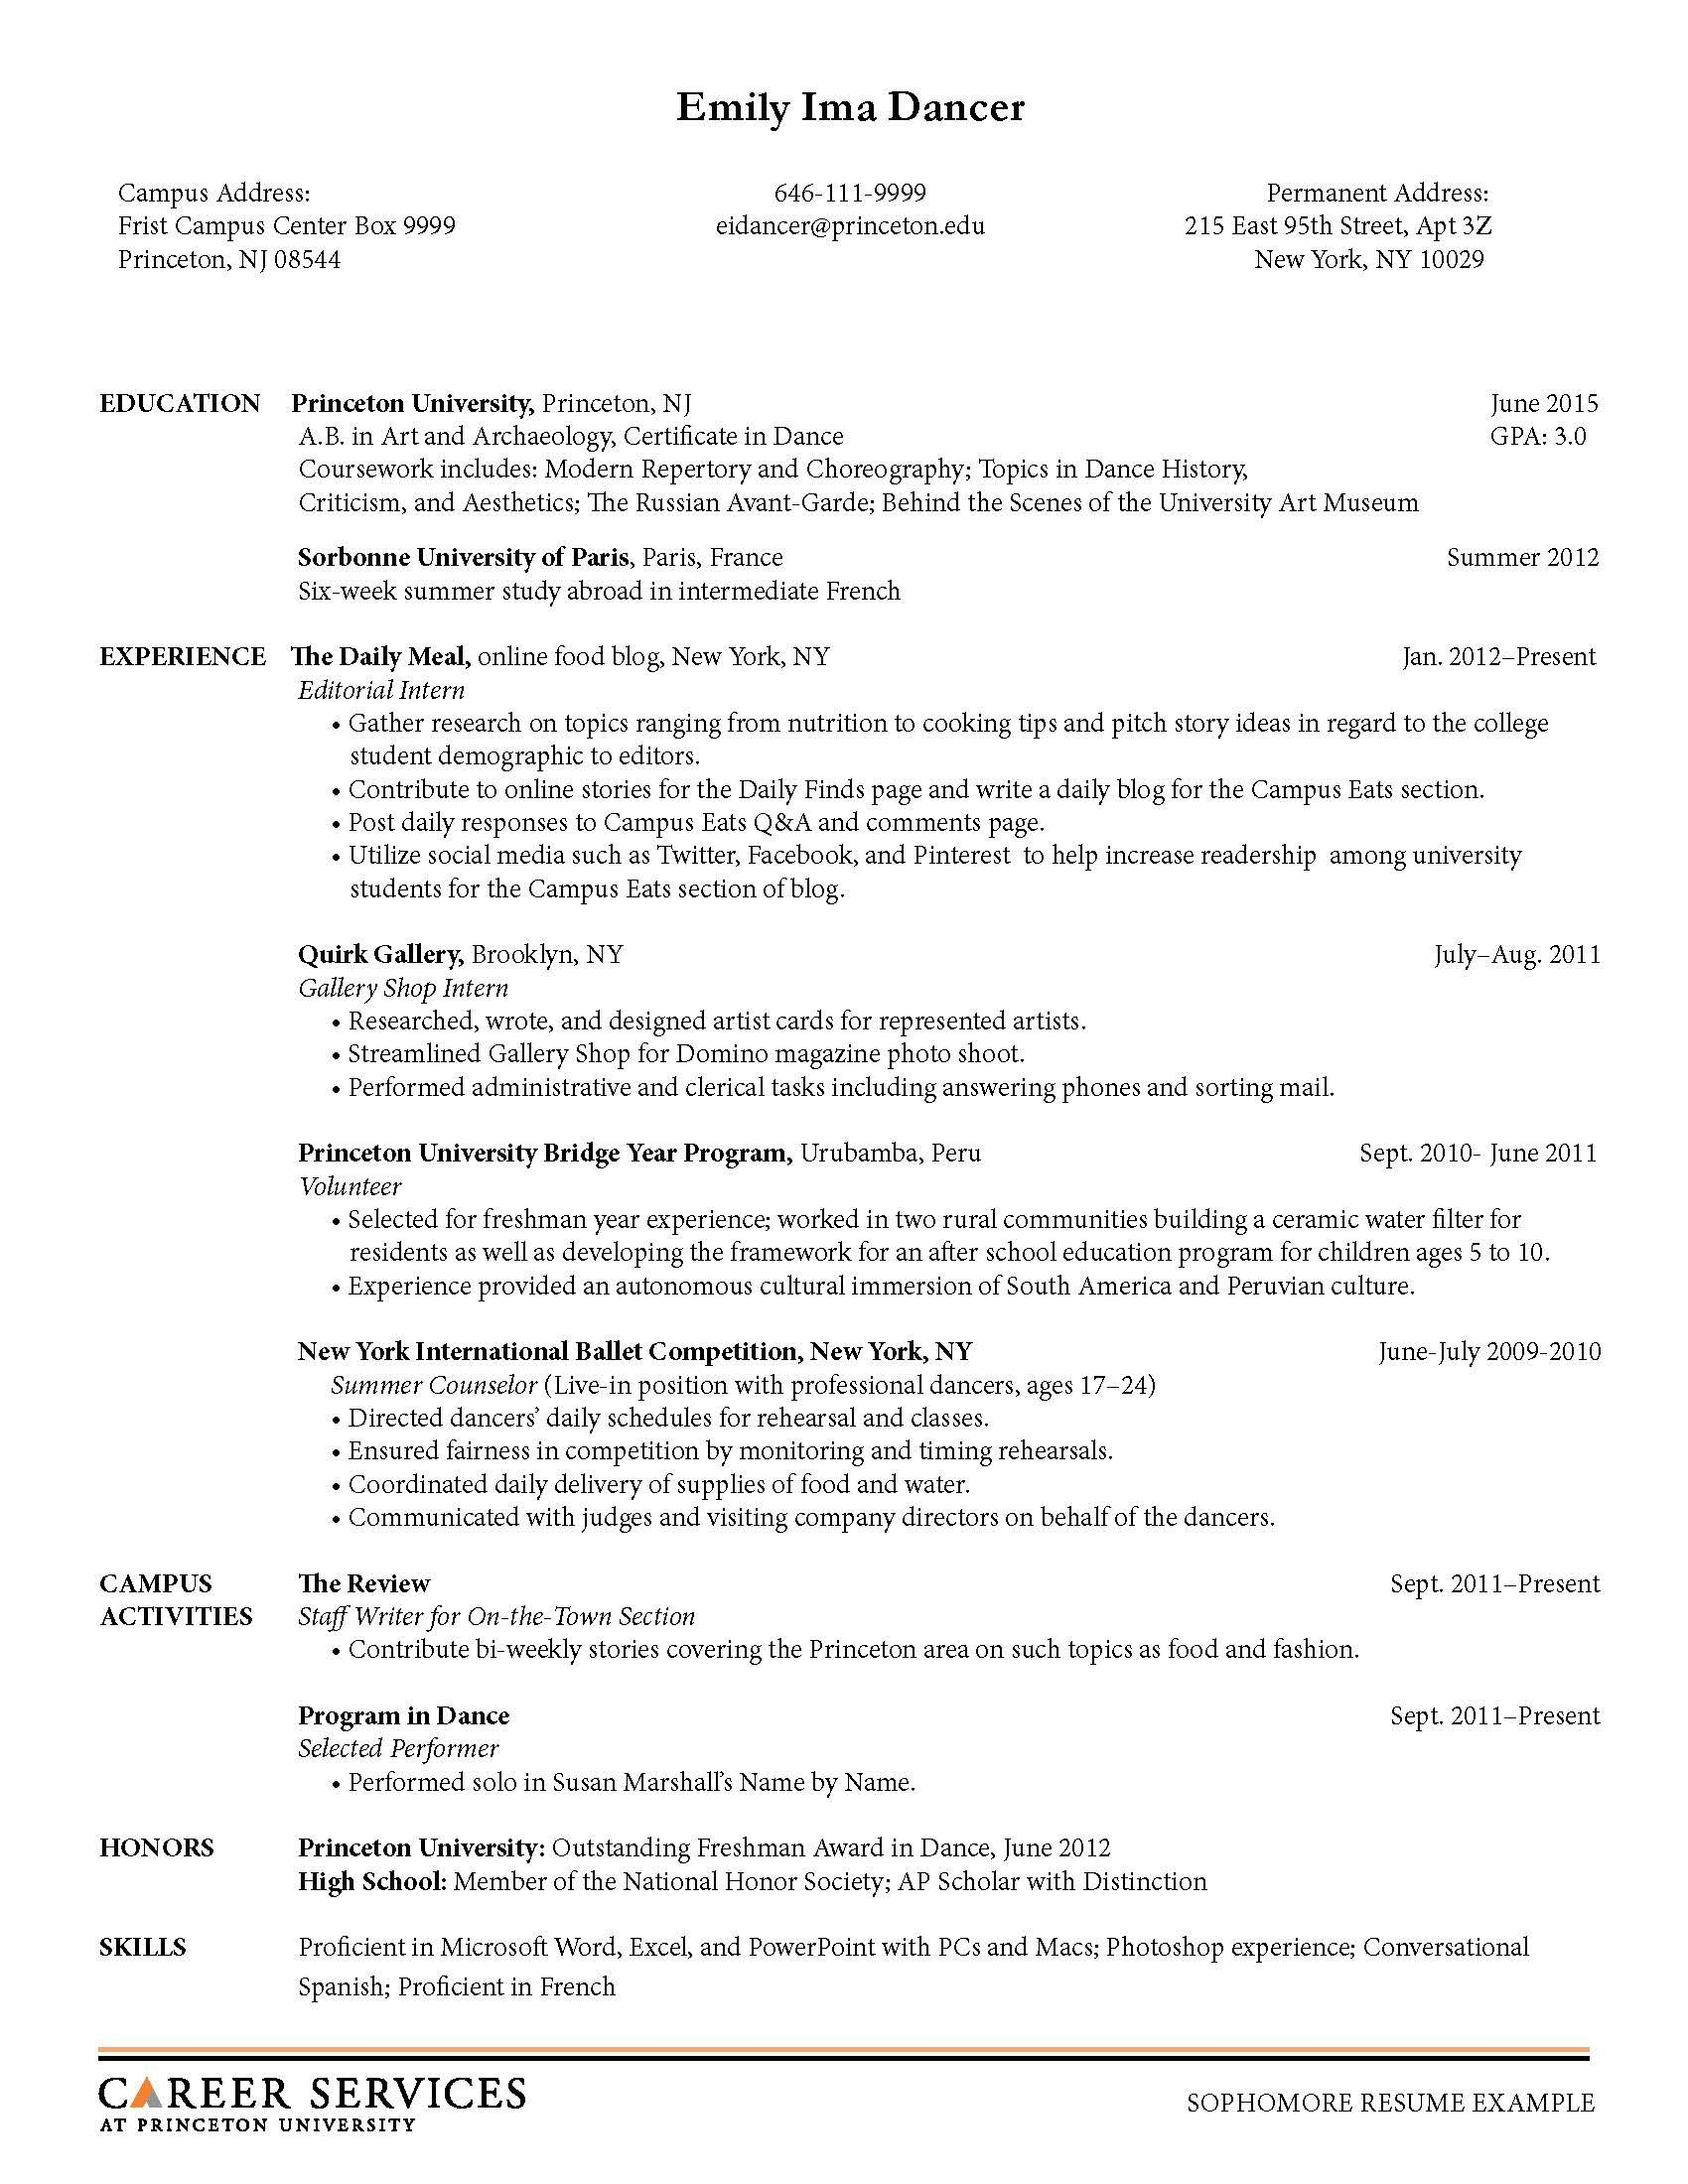 Opposenewapstandardsus  Nice Sample Resume Resume And Career On Pinterest With Inspiring Resume For Machine Operator Besides Example Of Resume Objectives Furthermore What Is Needed In A Resume With Charming My New Resume Also Case Worker Resume In Addition Linkedin Resume Examples And Supervisor Resume Skills As Well As Debt Collector Resume Additionally Tips For Making A Resume From Pinterestcom With Opposenewapstandardsus  Inspiring Sample Resume Resume And Career On Pinterest With Charming Resume For Machine Operator Besides Example Of Resume Objectives Furthermore What Is Needed In A Resume And Nice My New Resume Also Case Worker Resume In Addition Linkedin Resume Examples From Pinterestcom